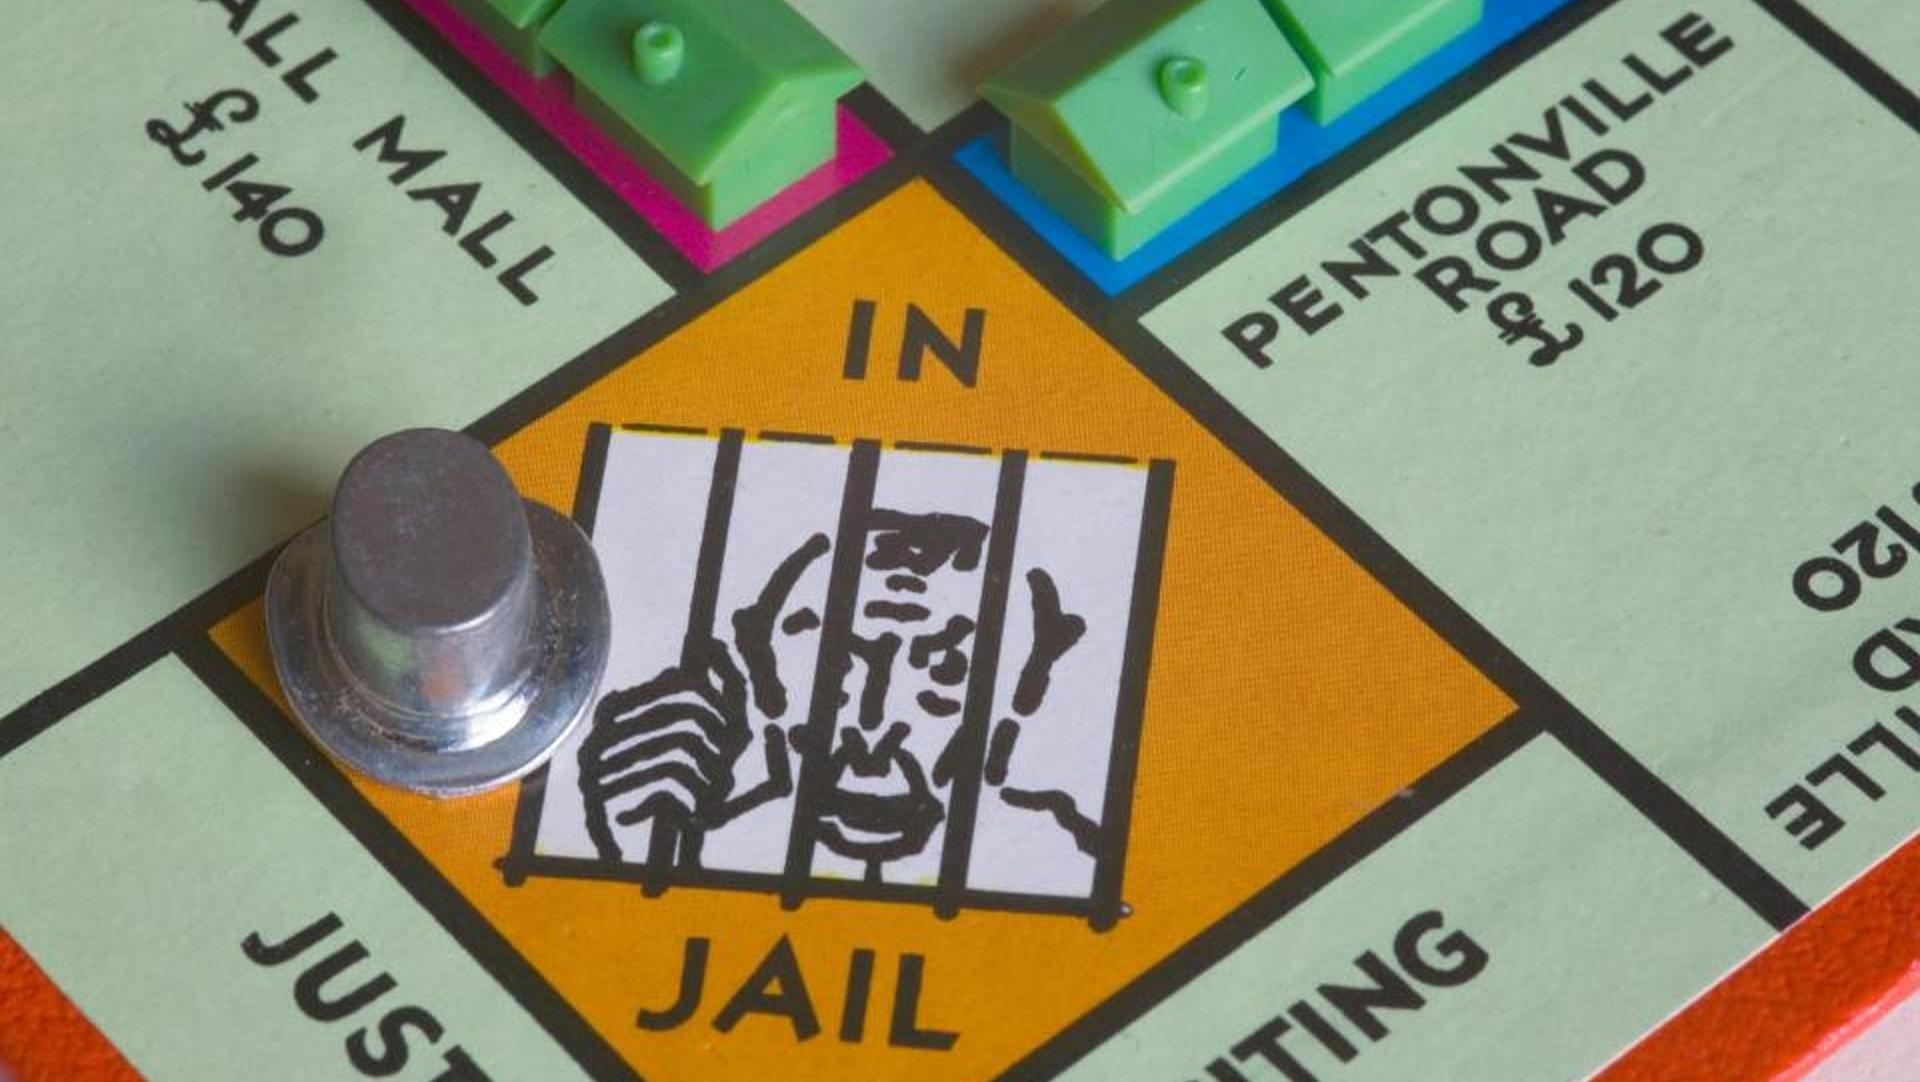 You're in prison on Monopoly.